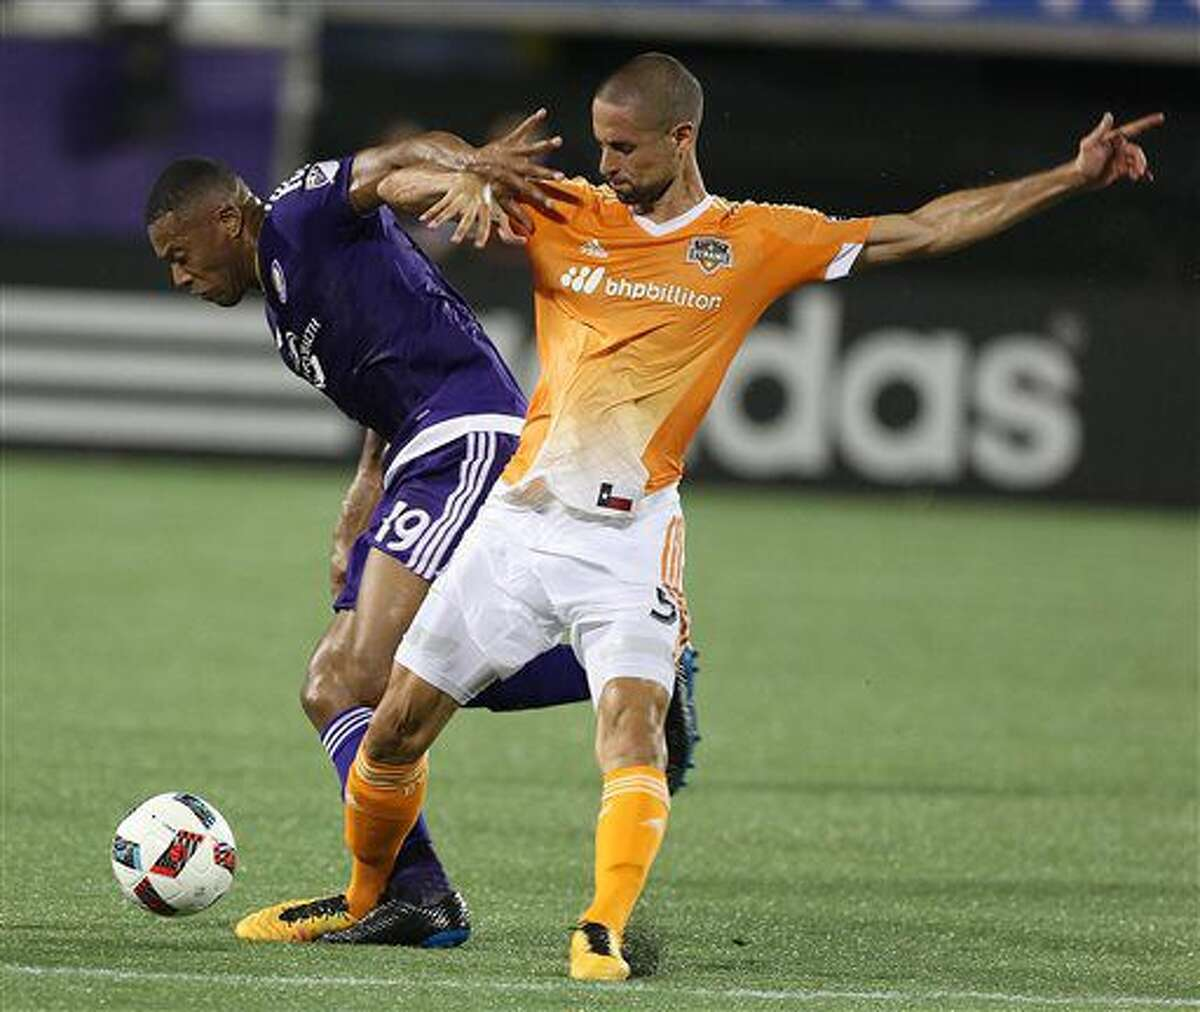 Orlando City's Julio Baptista (19) keeps the ball from Houston player Raul Rodriguez (5) during an MLS soccer game in Orlando, Fla., Friday, July 8, 2016. (Stephen M. Dowell/Orlando Sentinel via AP)